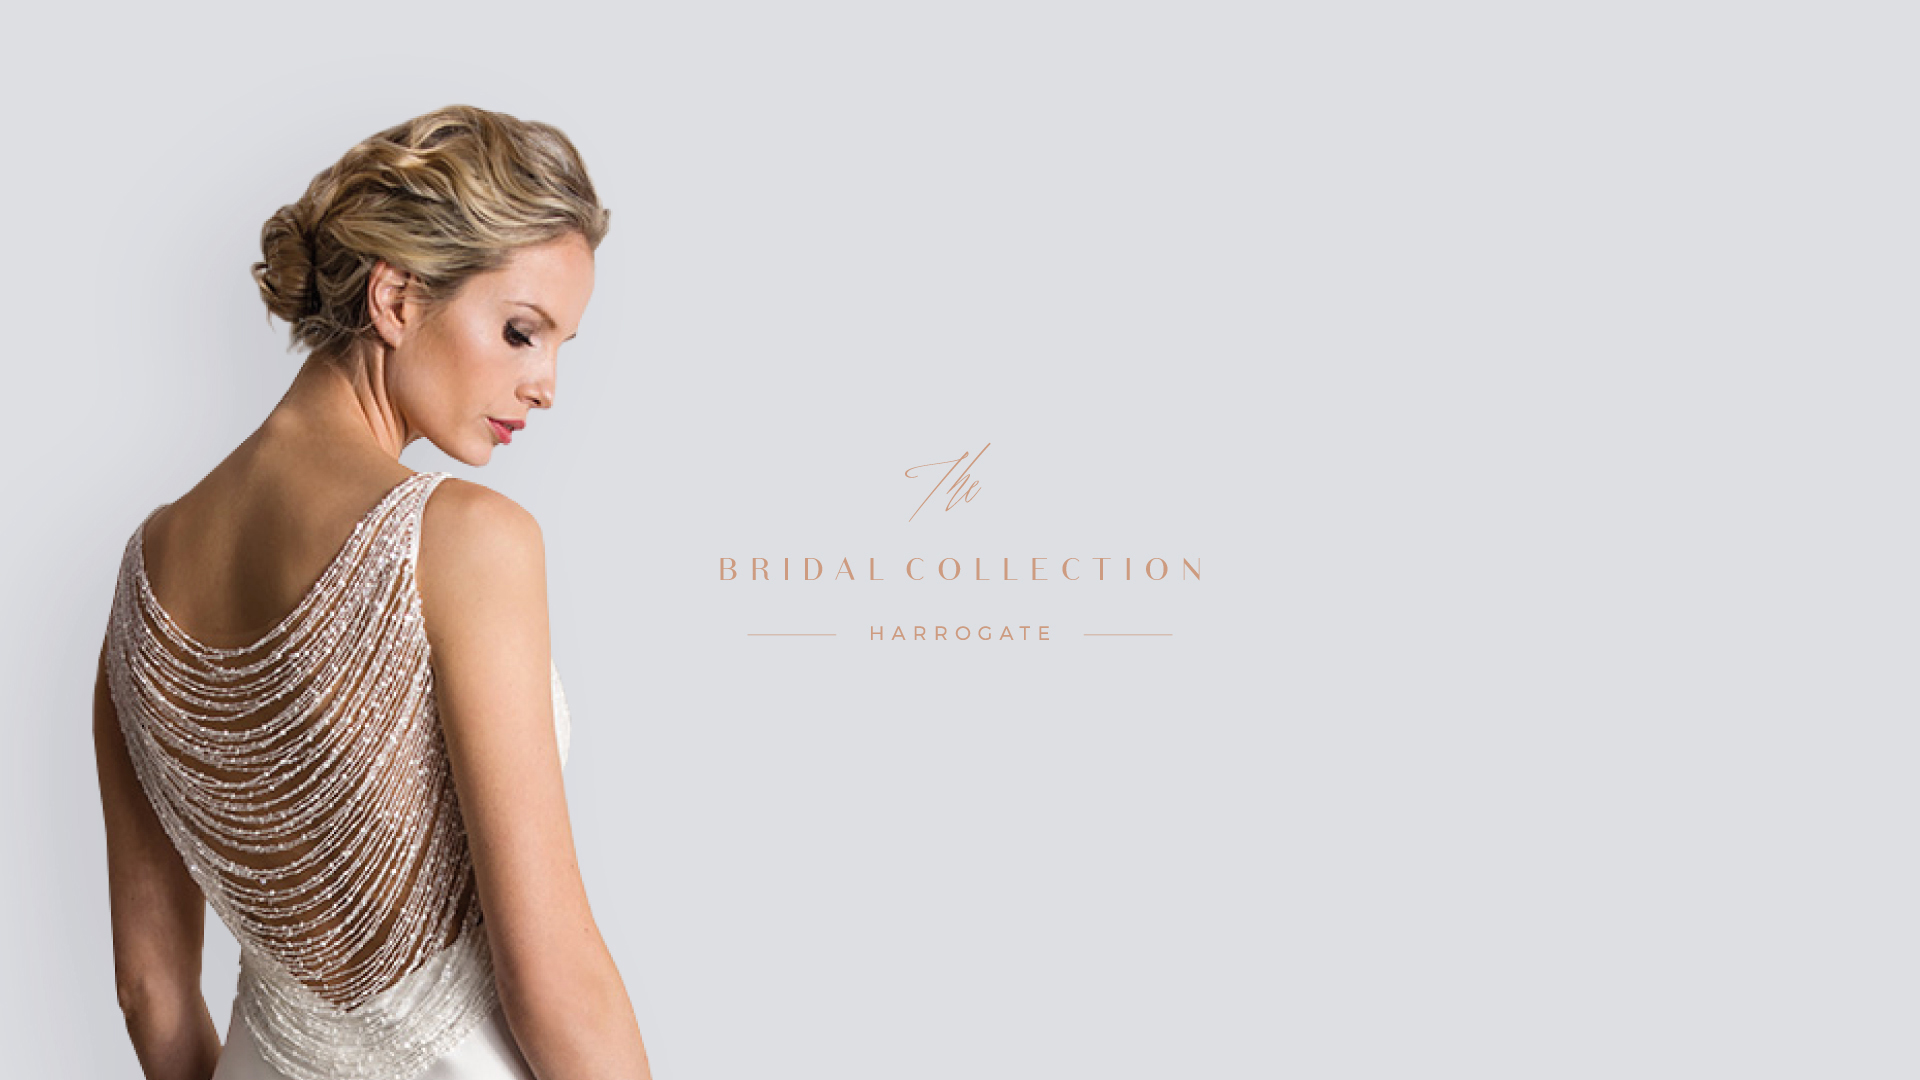 TheBridalCollection